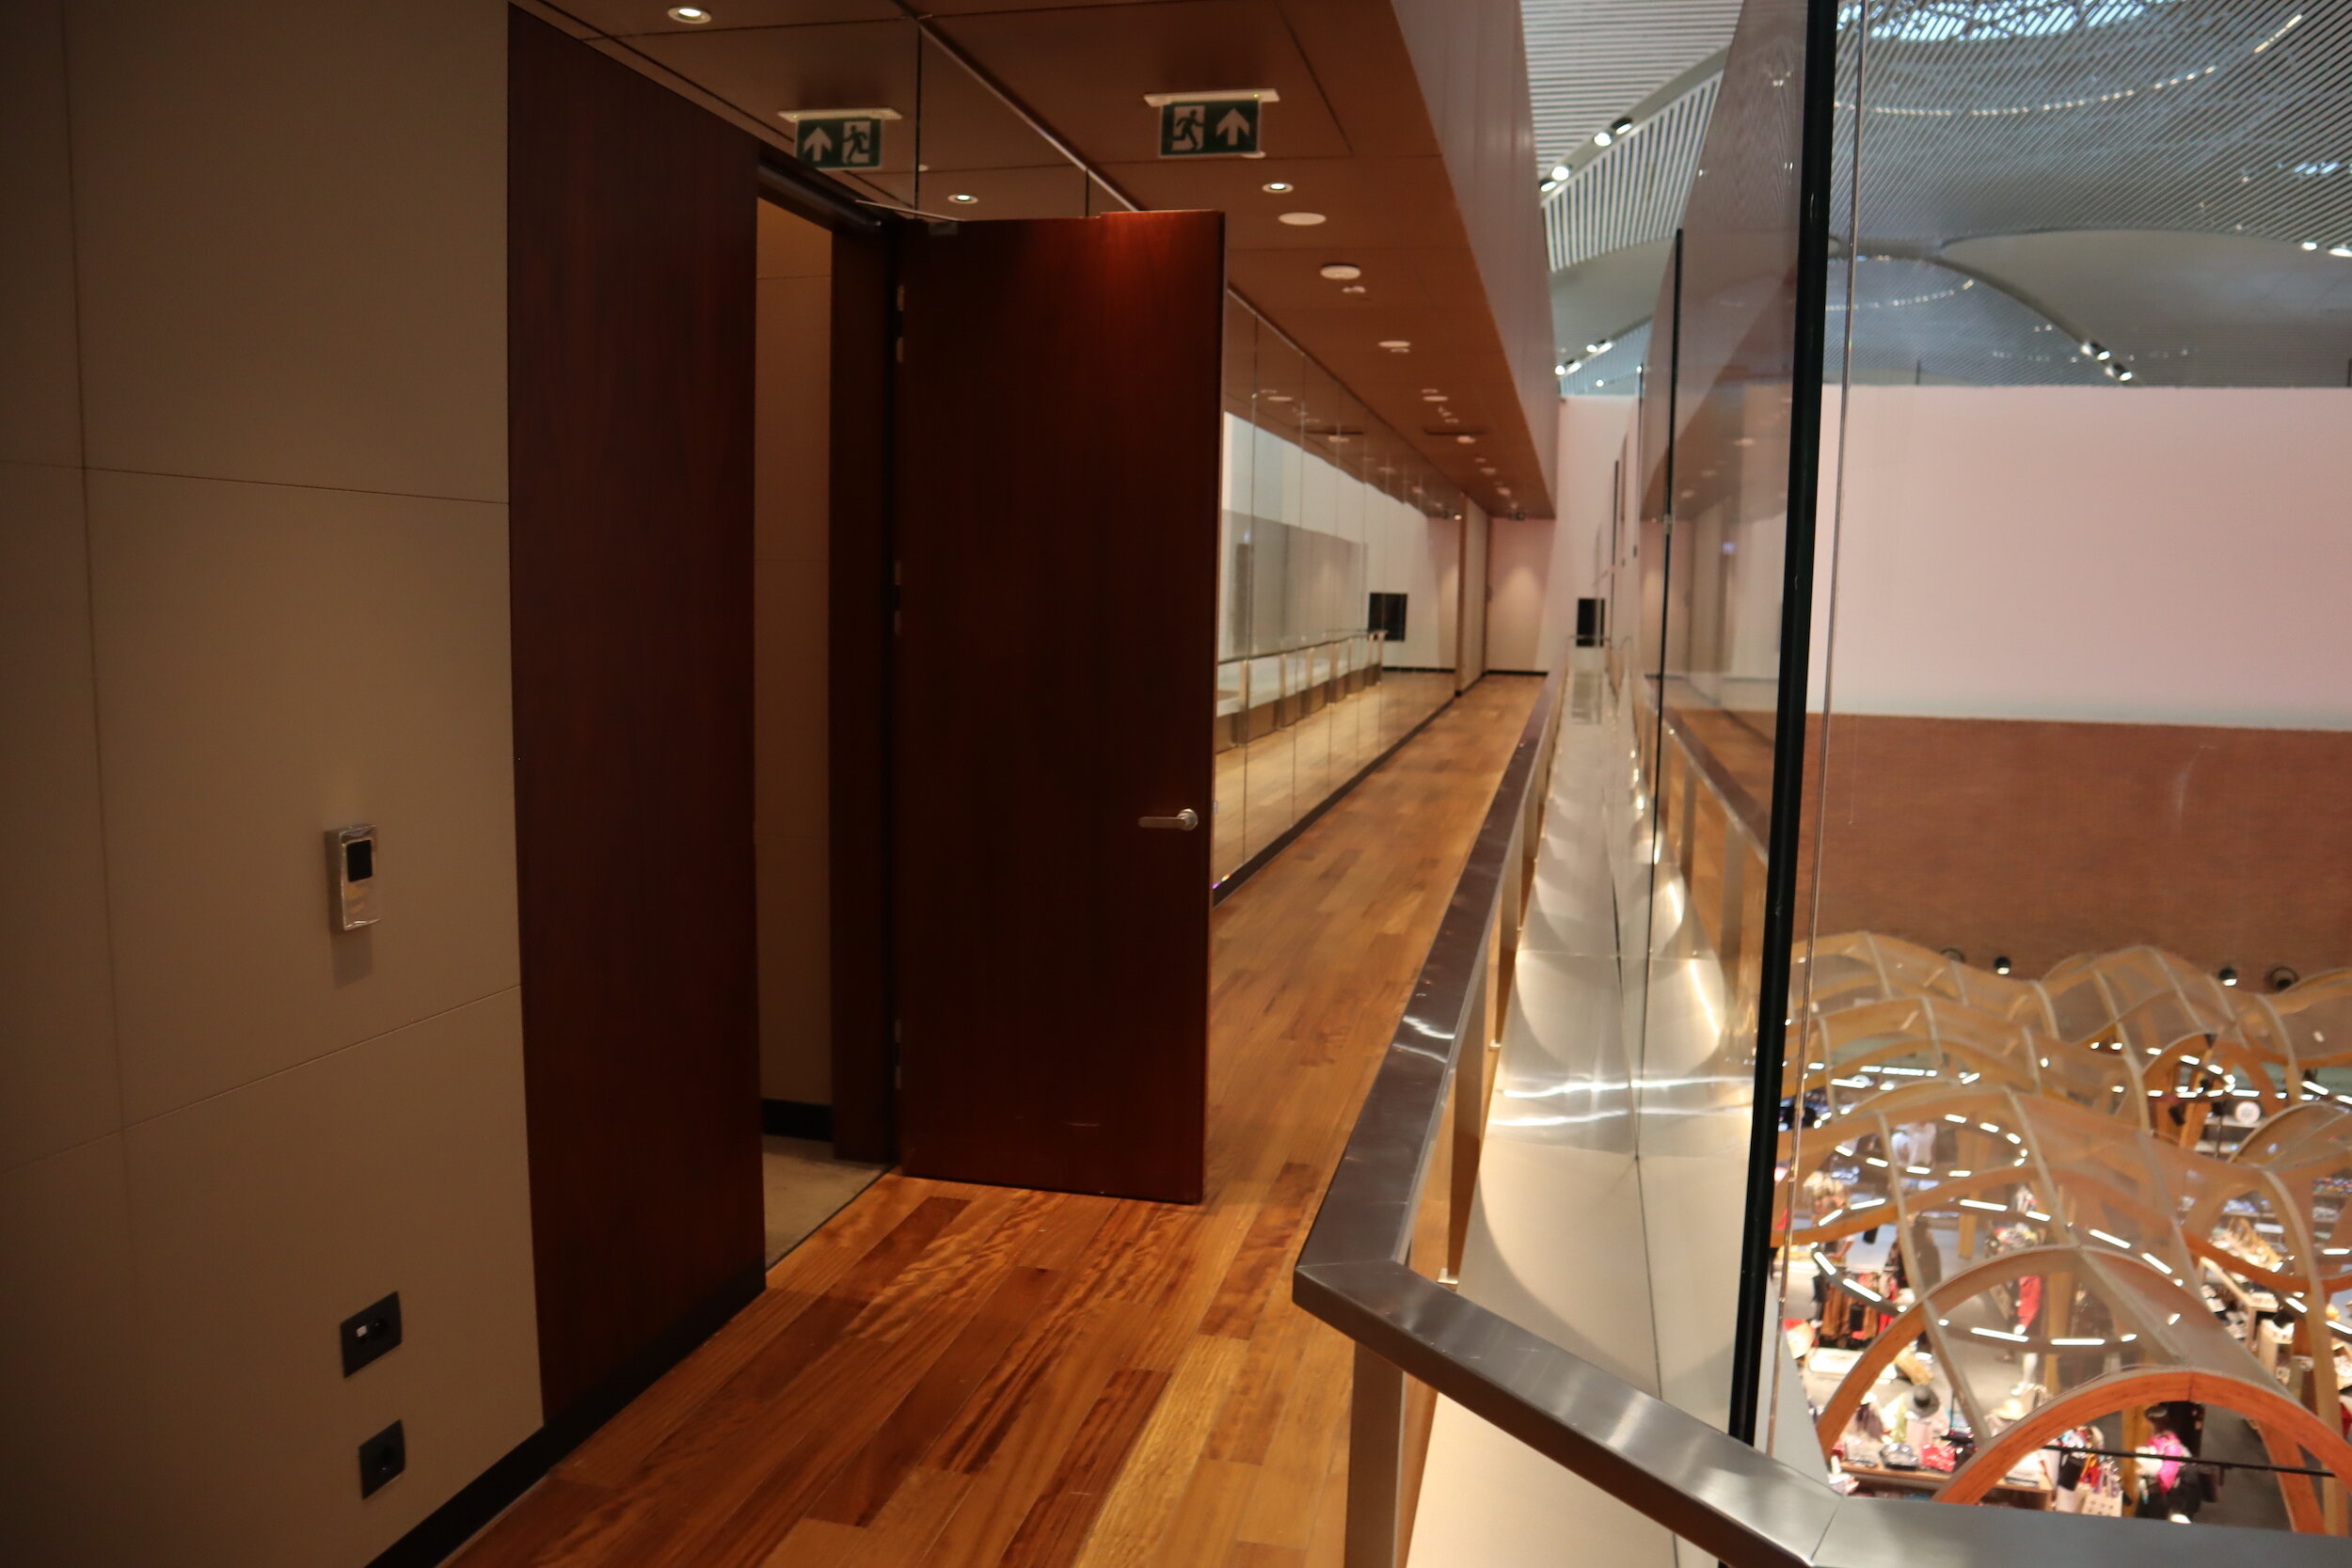 Turkish Airlines Business Lounge Istanbul – Walkway to shower and nap rooms